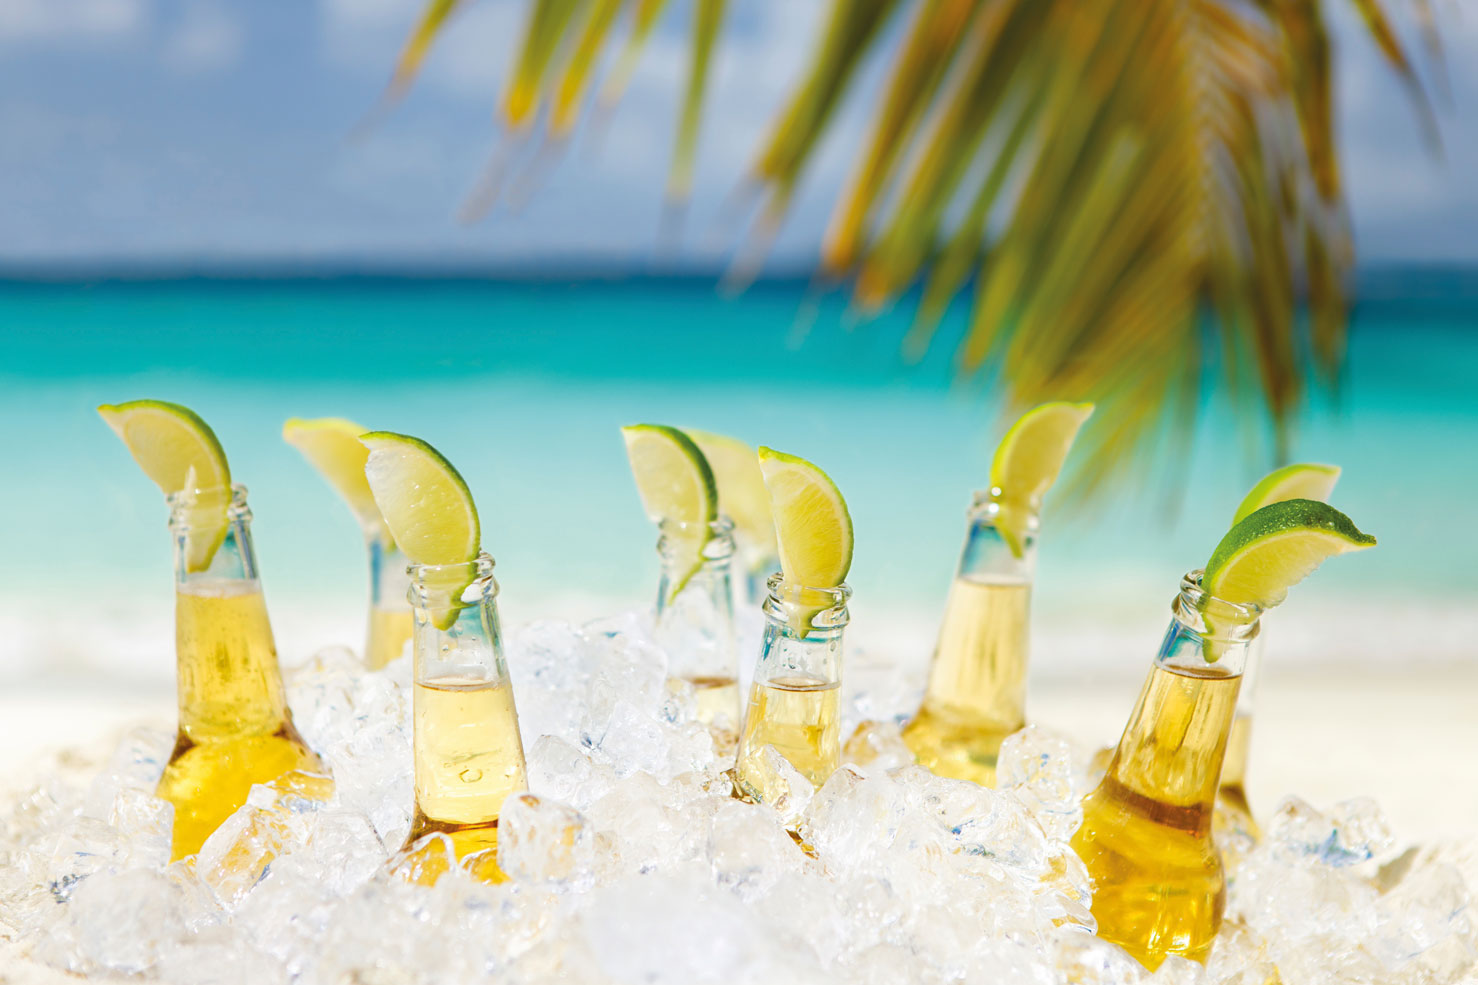 ice, summer, beach, drinks, outdoor